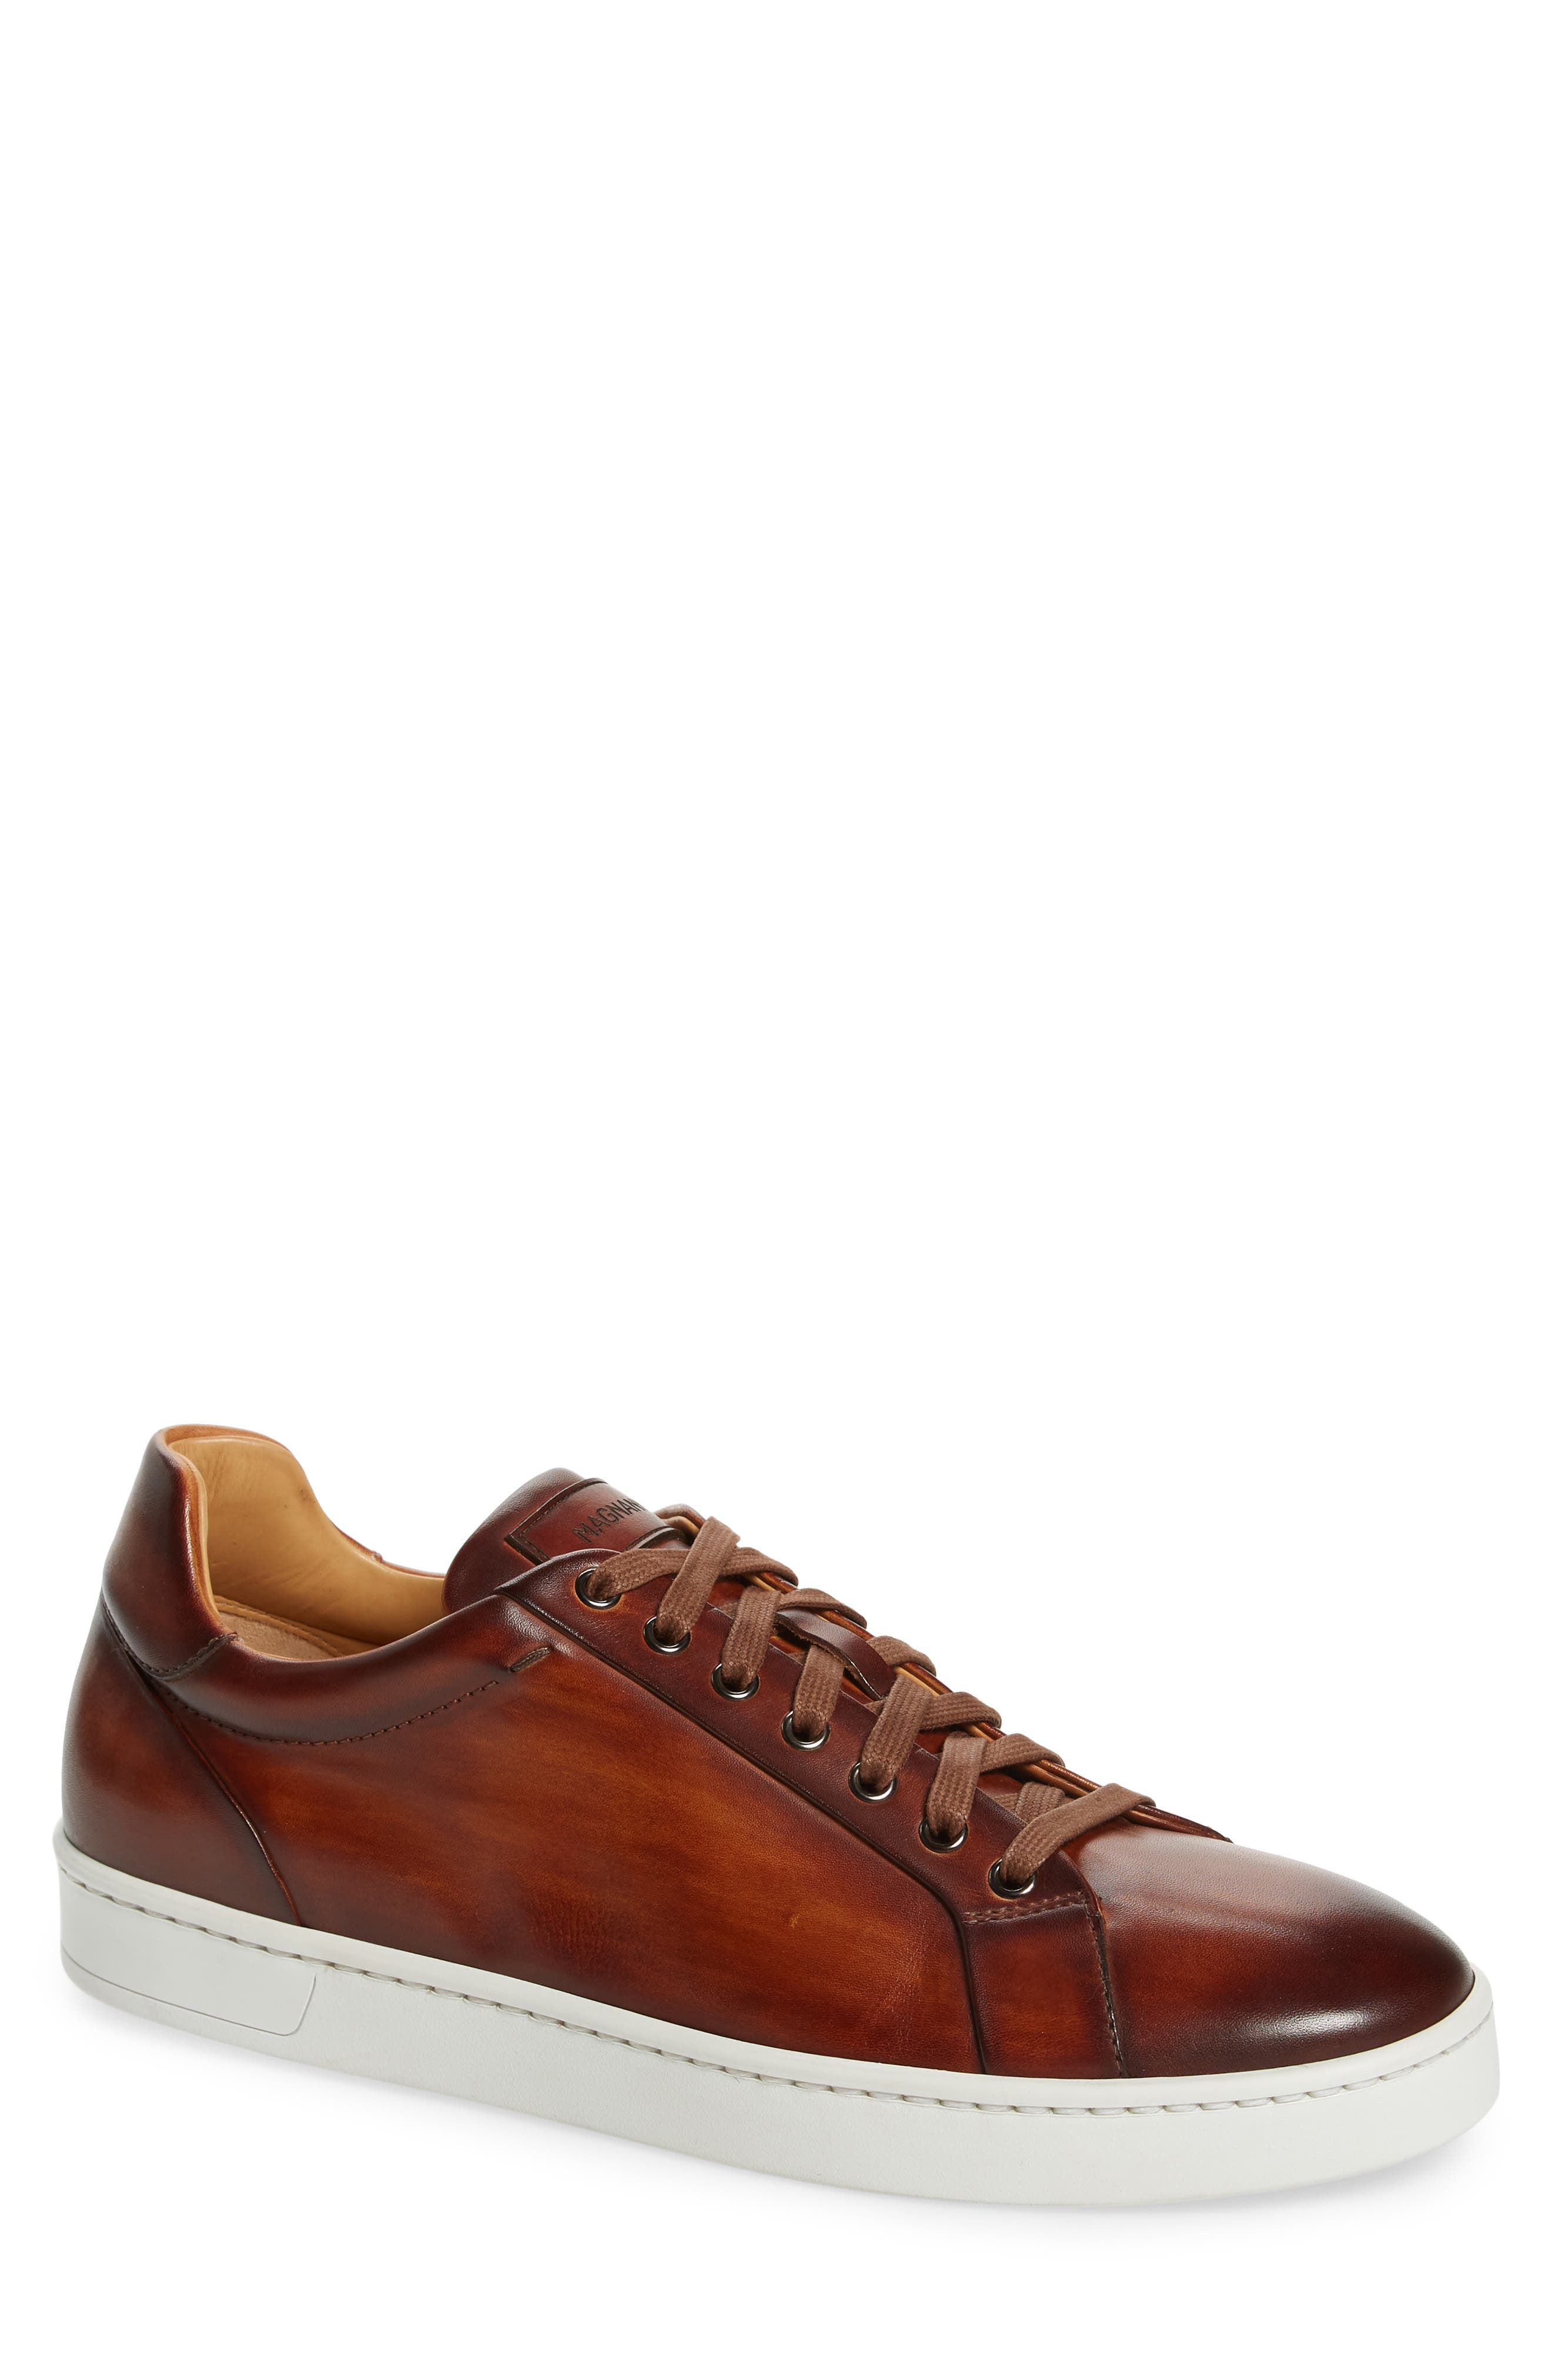 Elonso Low Top Sneaker,                             Main thumbnail 1, color,                             COGNAC LEATHER